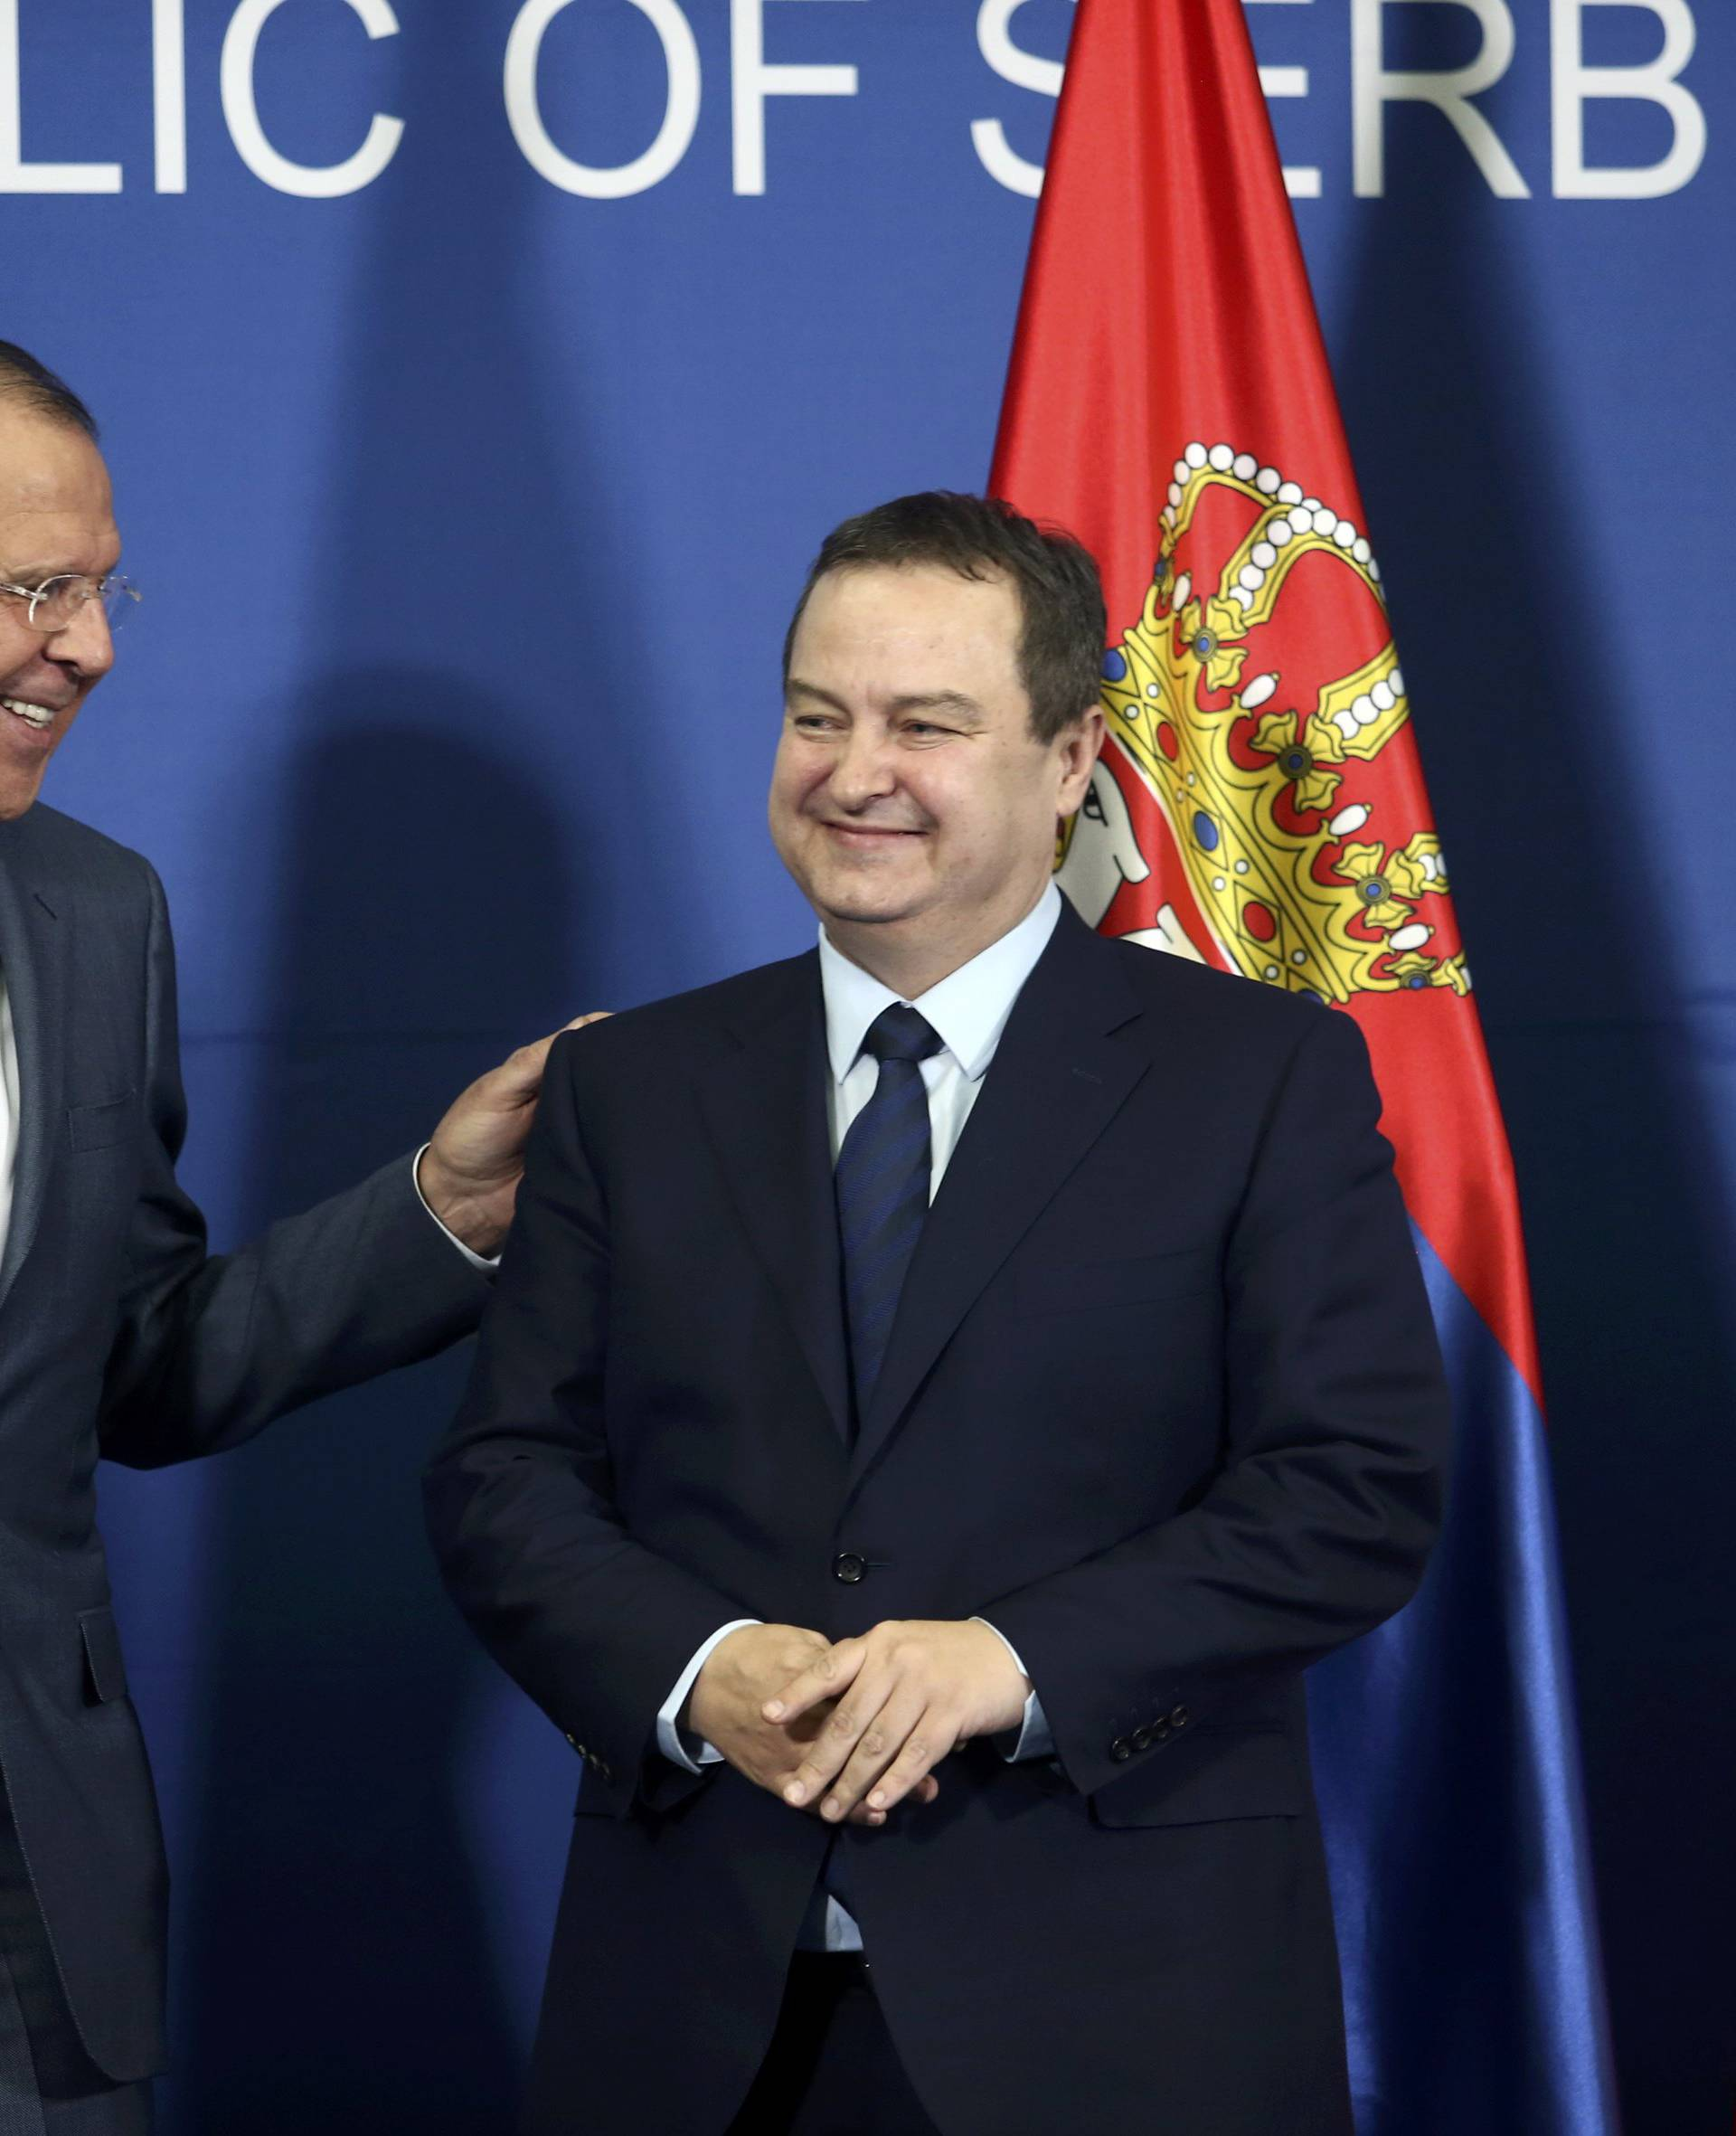 Serbian Foreign Minister Dacic and his Russian counterpart Lavrov arrive for a press conference in Belgrade